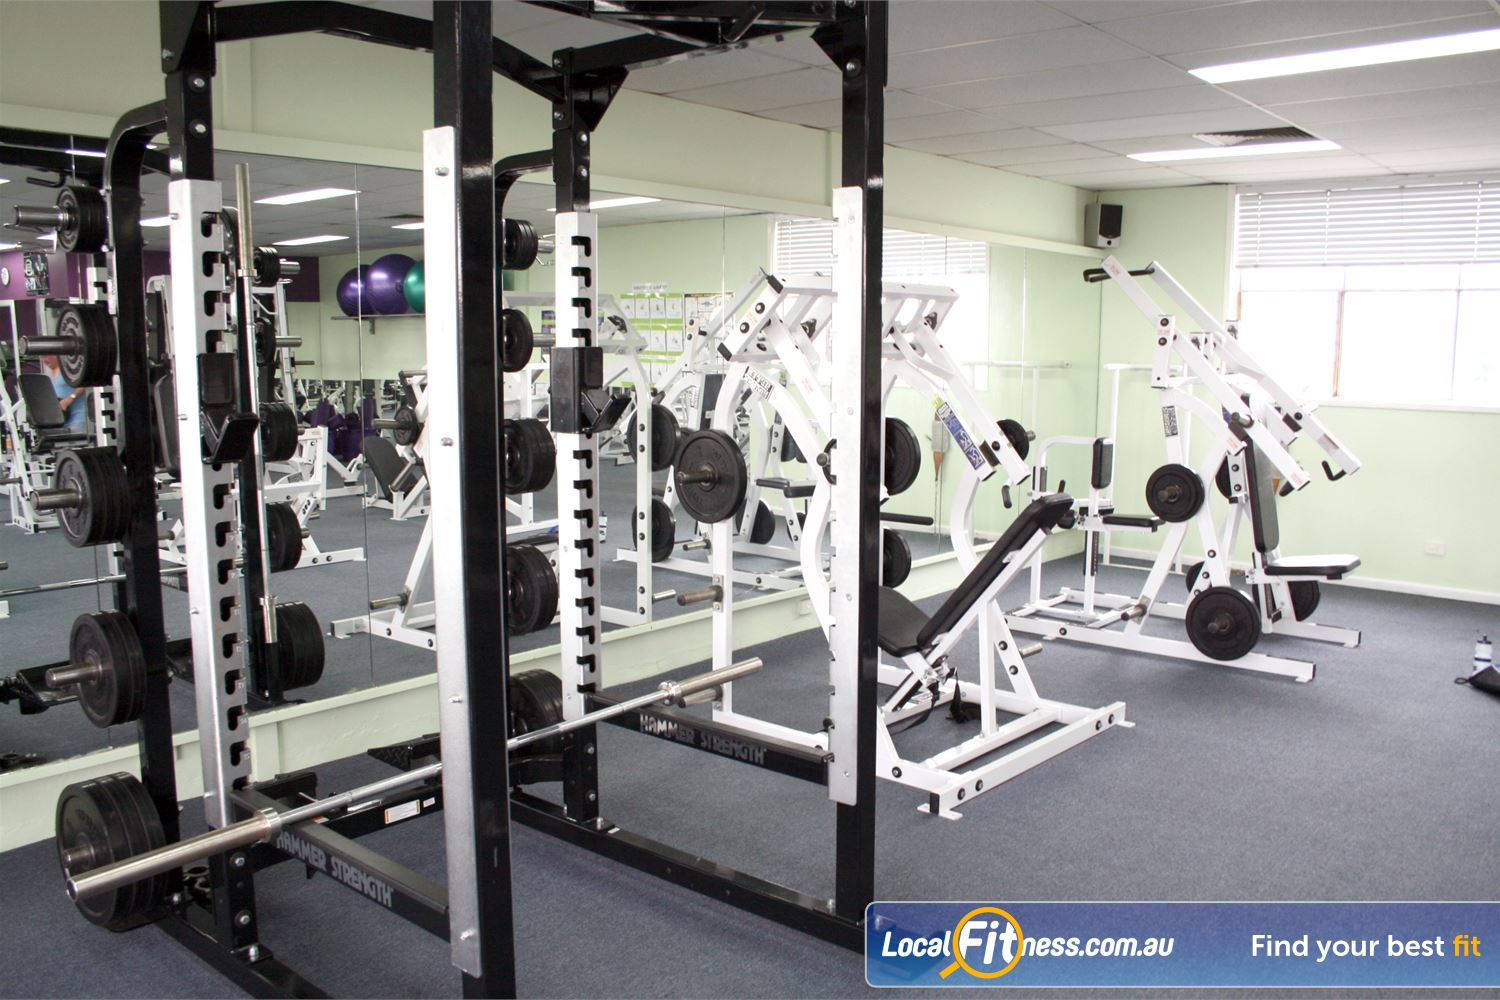 Berry Fitness Centre Near Carrum Heavy duty squat/lifting rack for strength training.